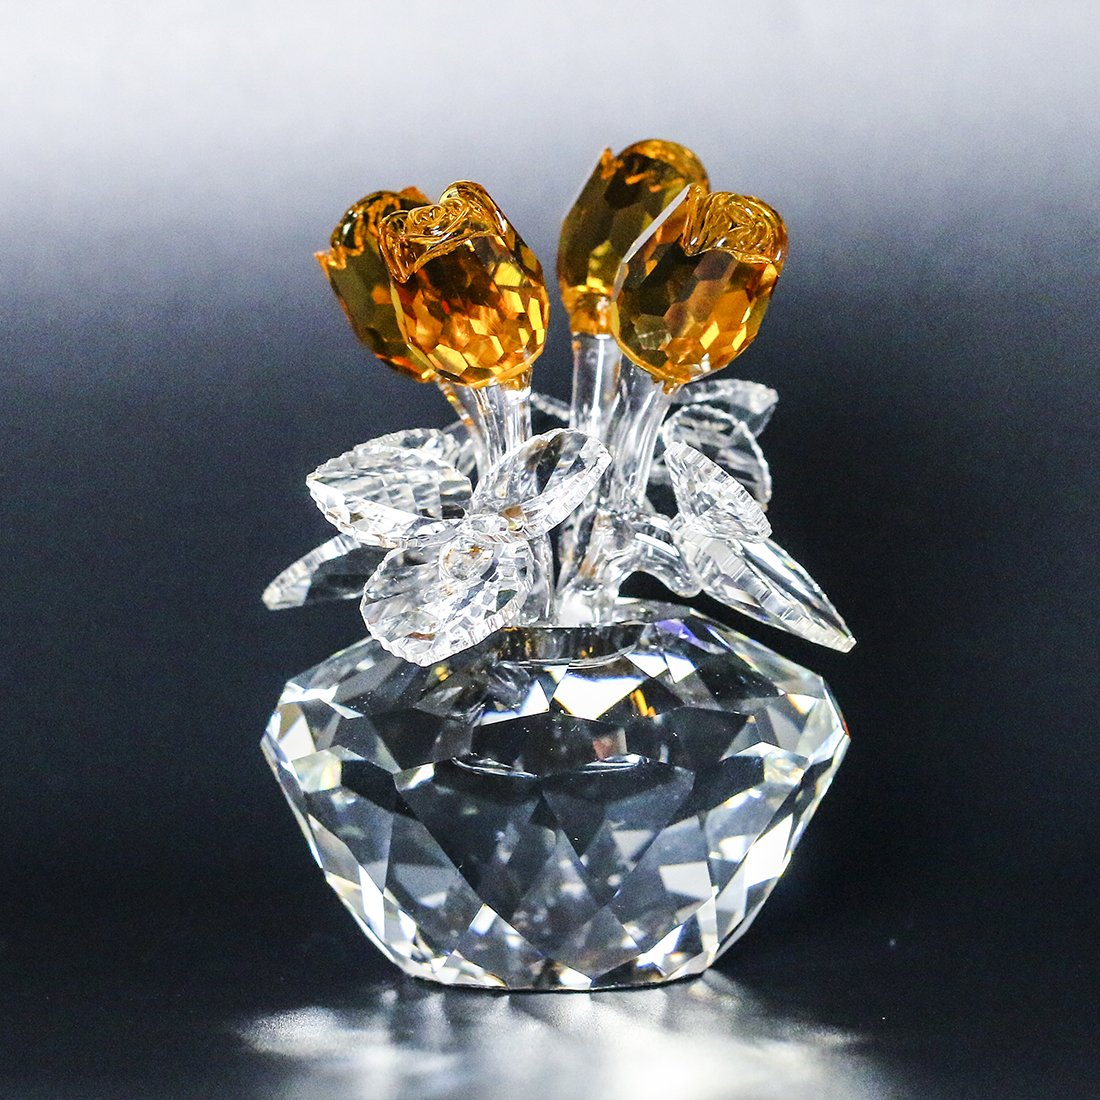 Spring Bouquet Crystal Glass Flowers Yellow Rose Figurine Ornament Gift-boxed